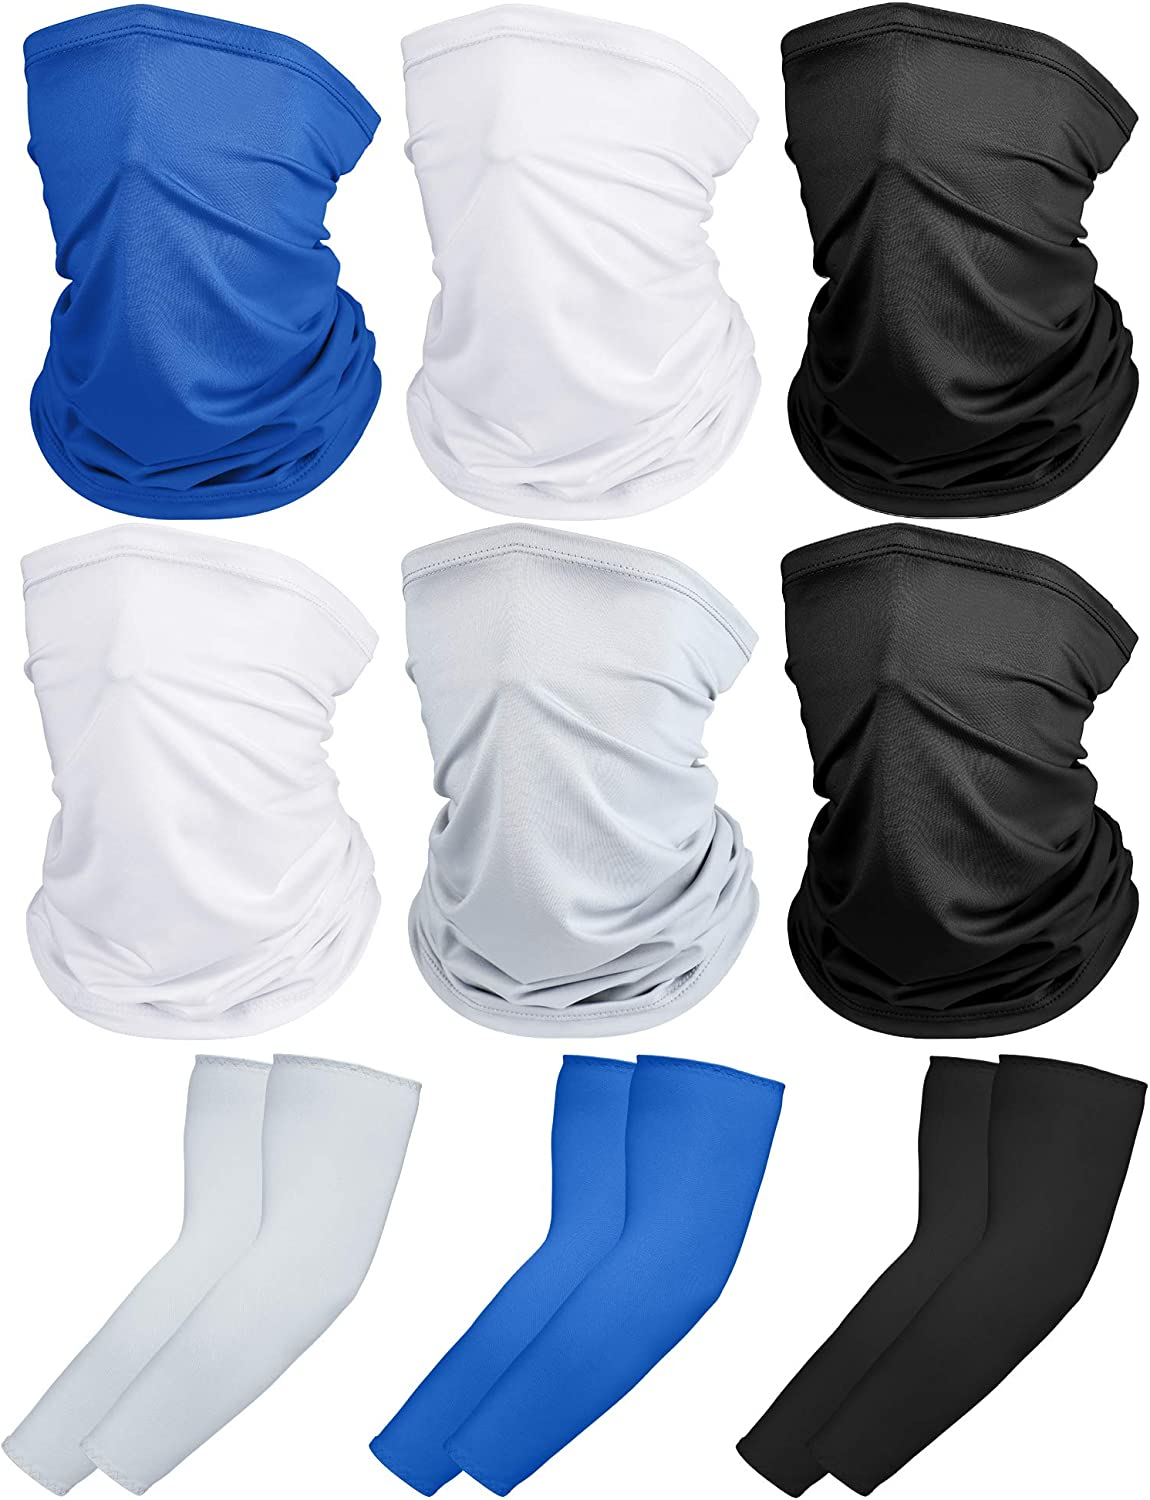 SATINIOR 6 Pieces Summer UV Protection Face Covers Neck Gaiter Breathable Bandana Scarf with 3 Pairs Ice Silk Cooling Arm Sleeves for Summer Outdoor Activities